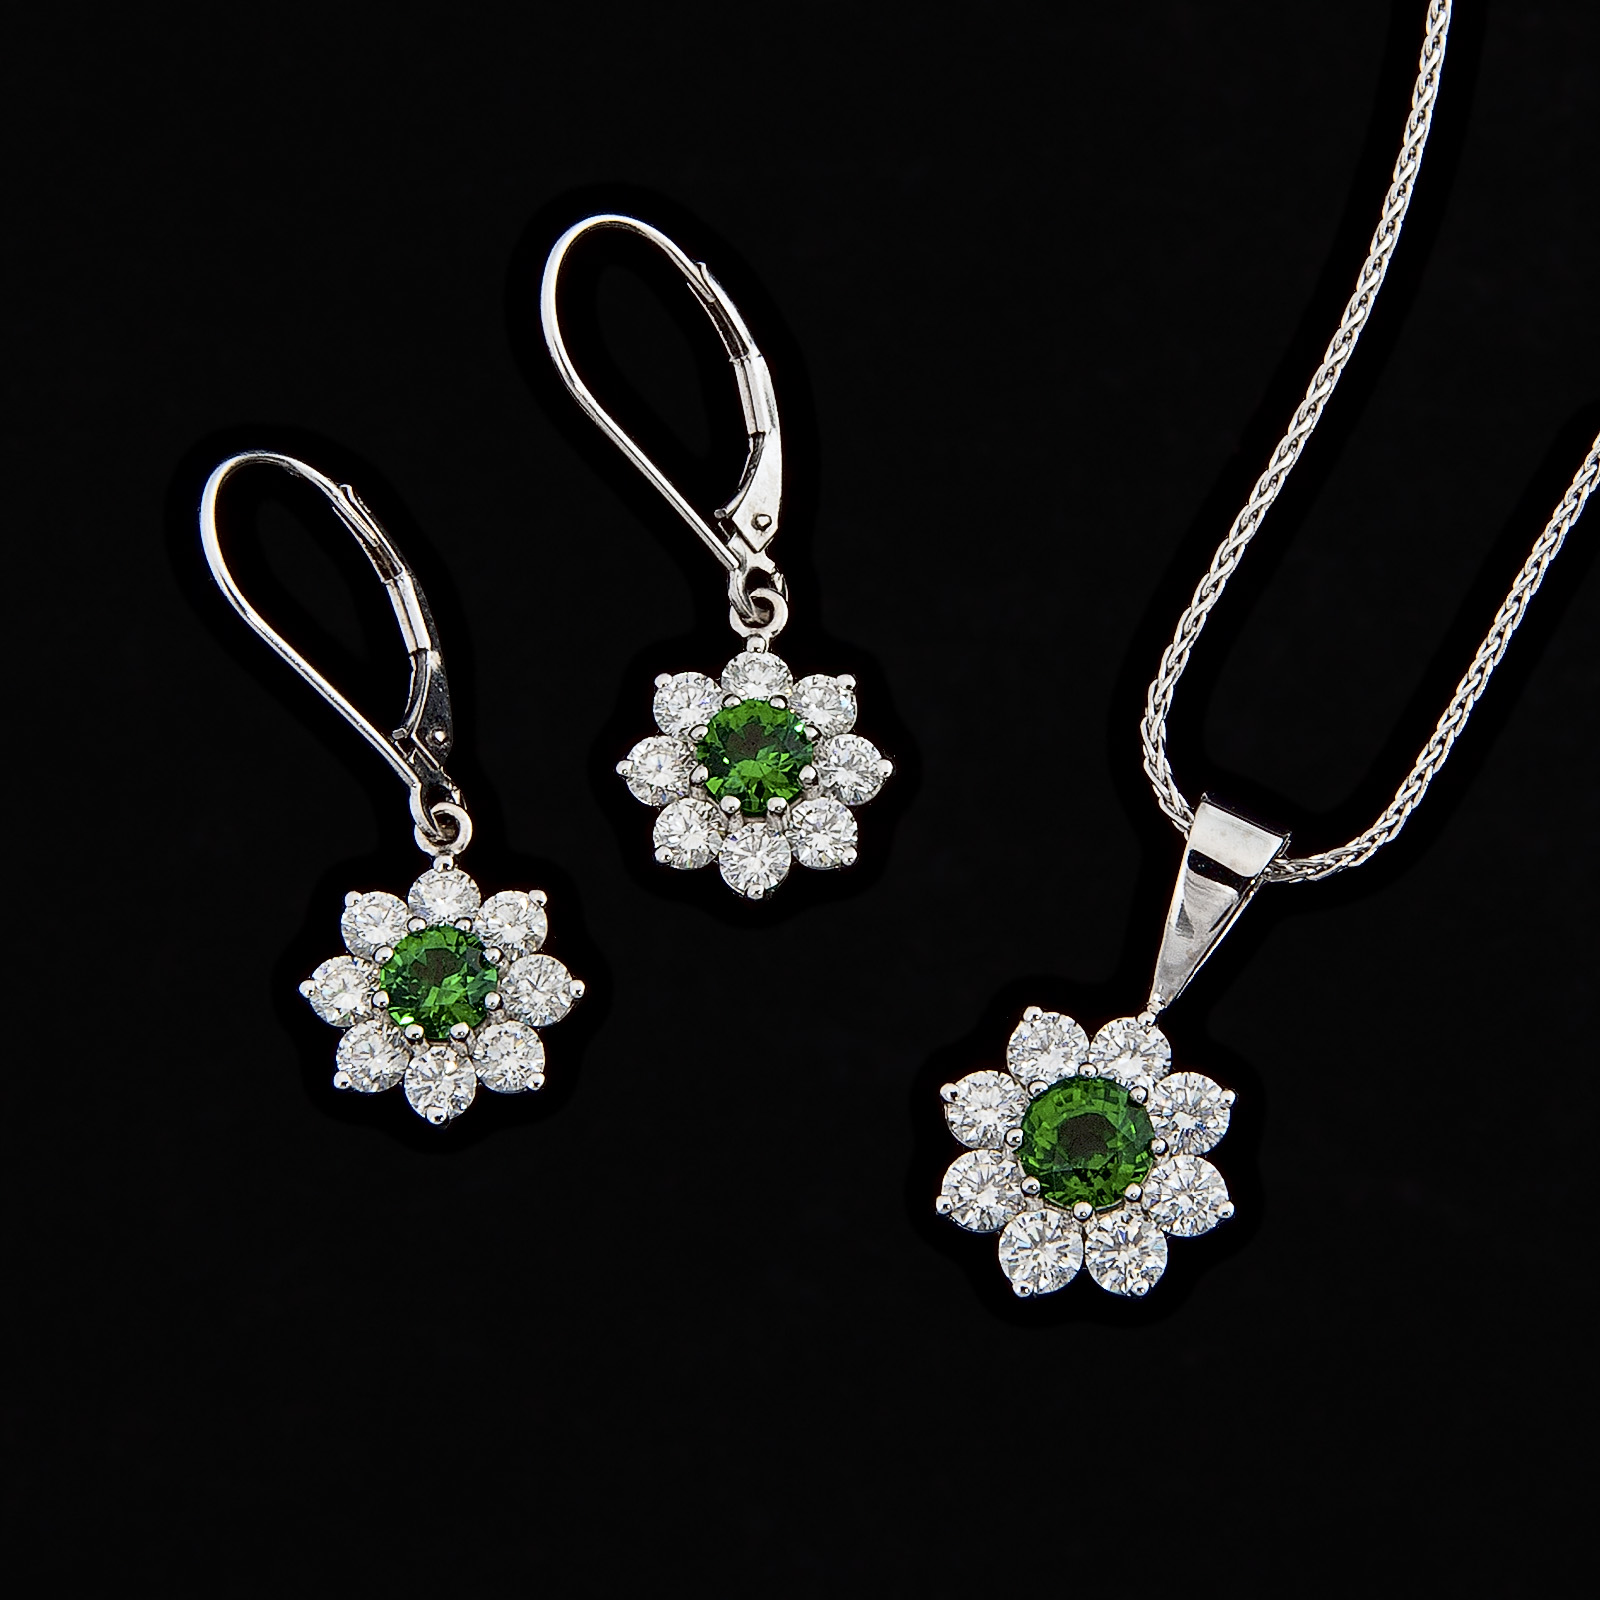 Tsavorite garnet earrings and necklace h lebow diamond brokers tsavorite garnet earrings and necklace aloadofball